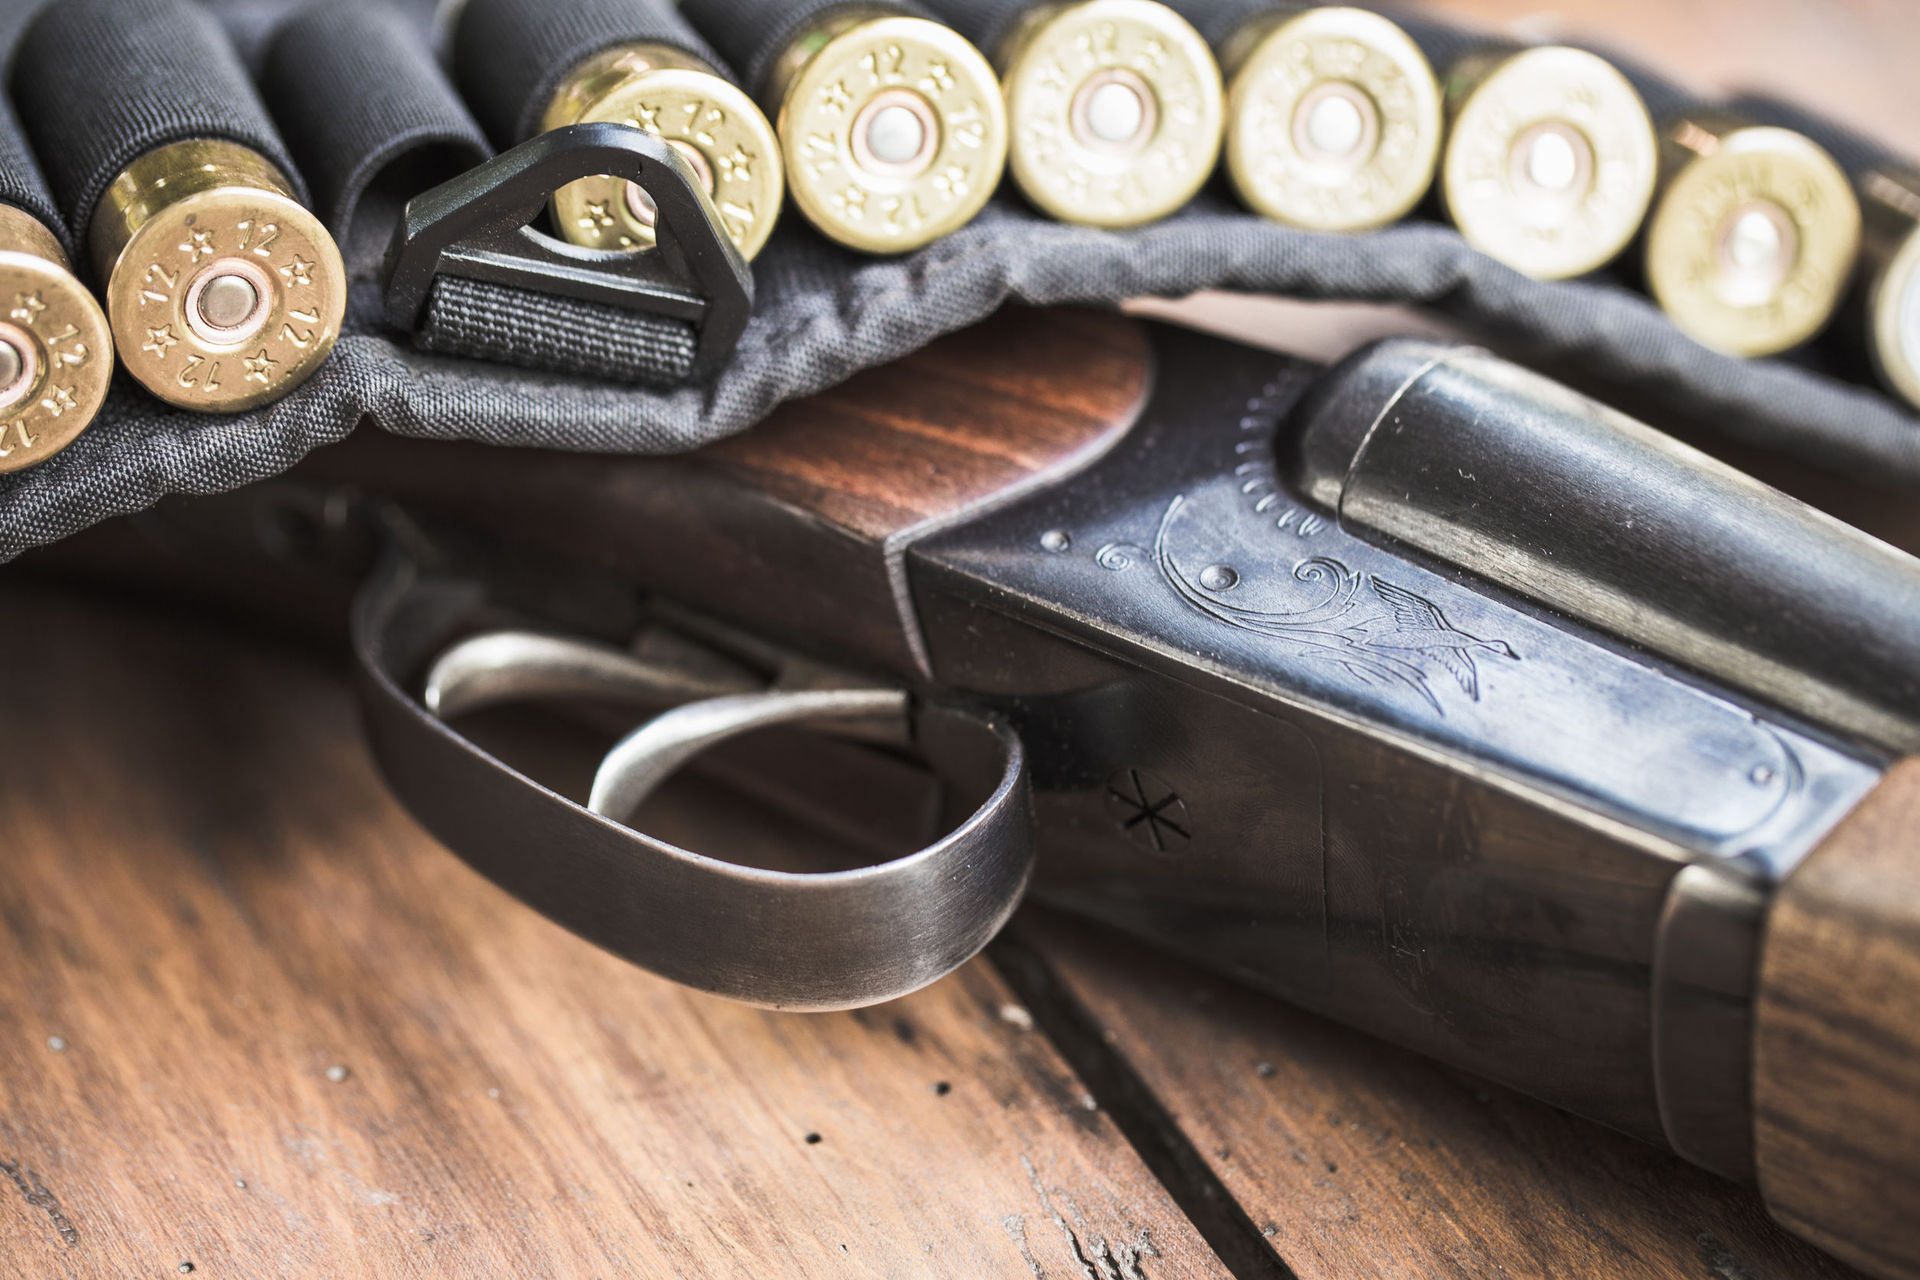 Man convicted of murder after rigging a shotgun as a booby trap to protect his home